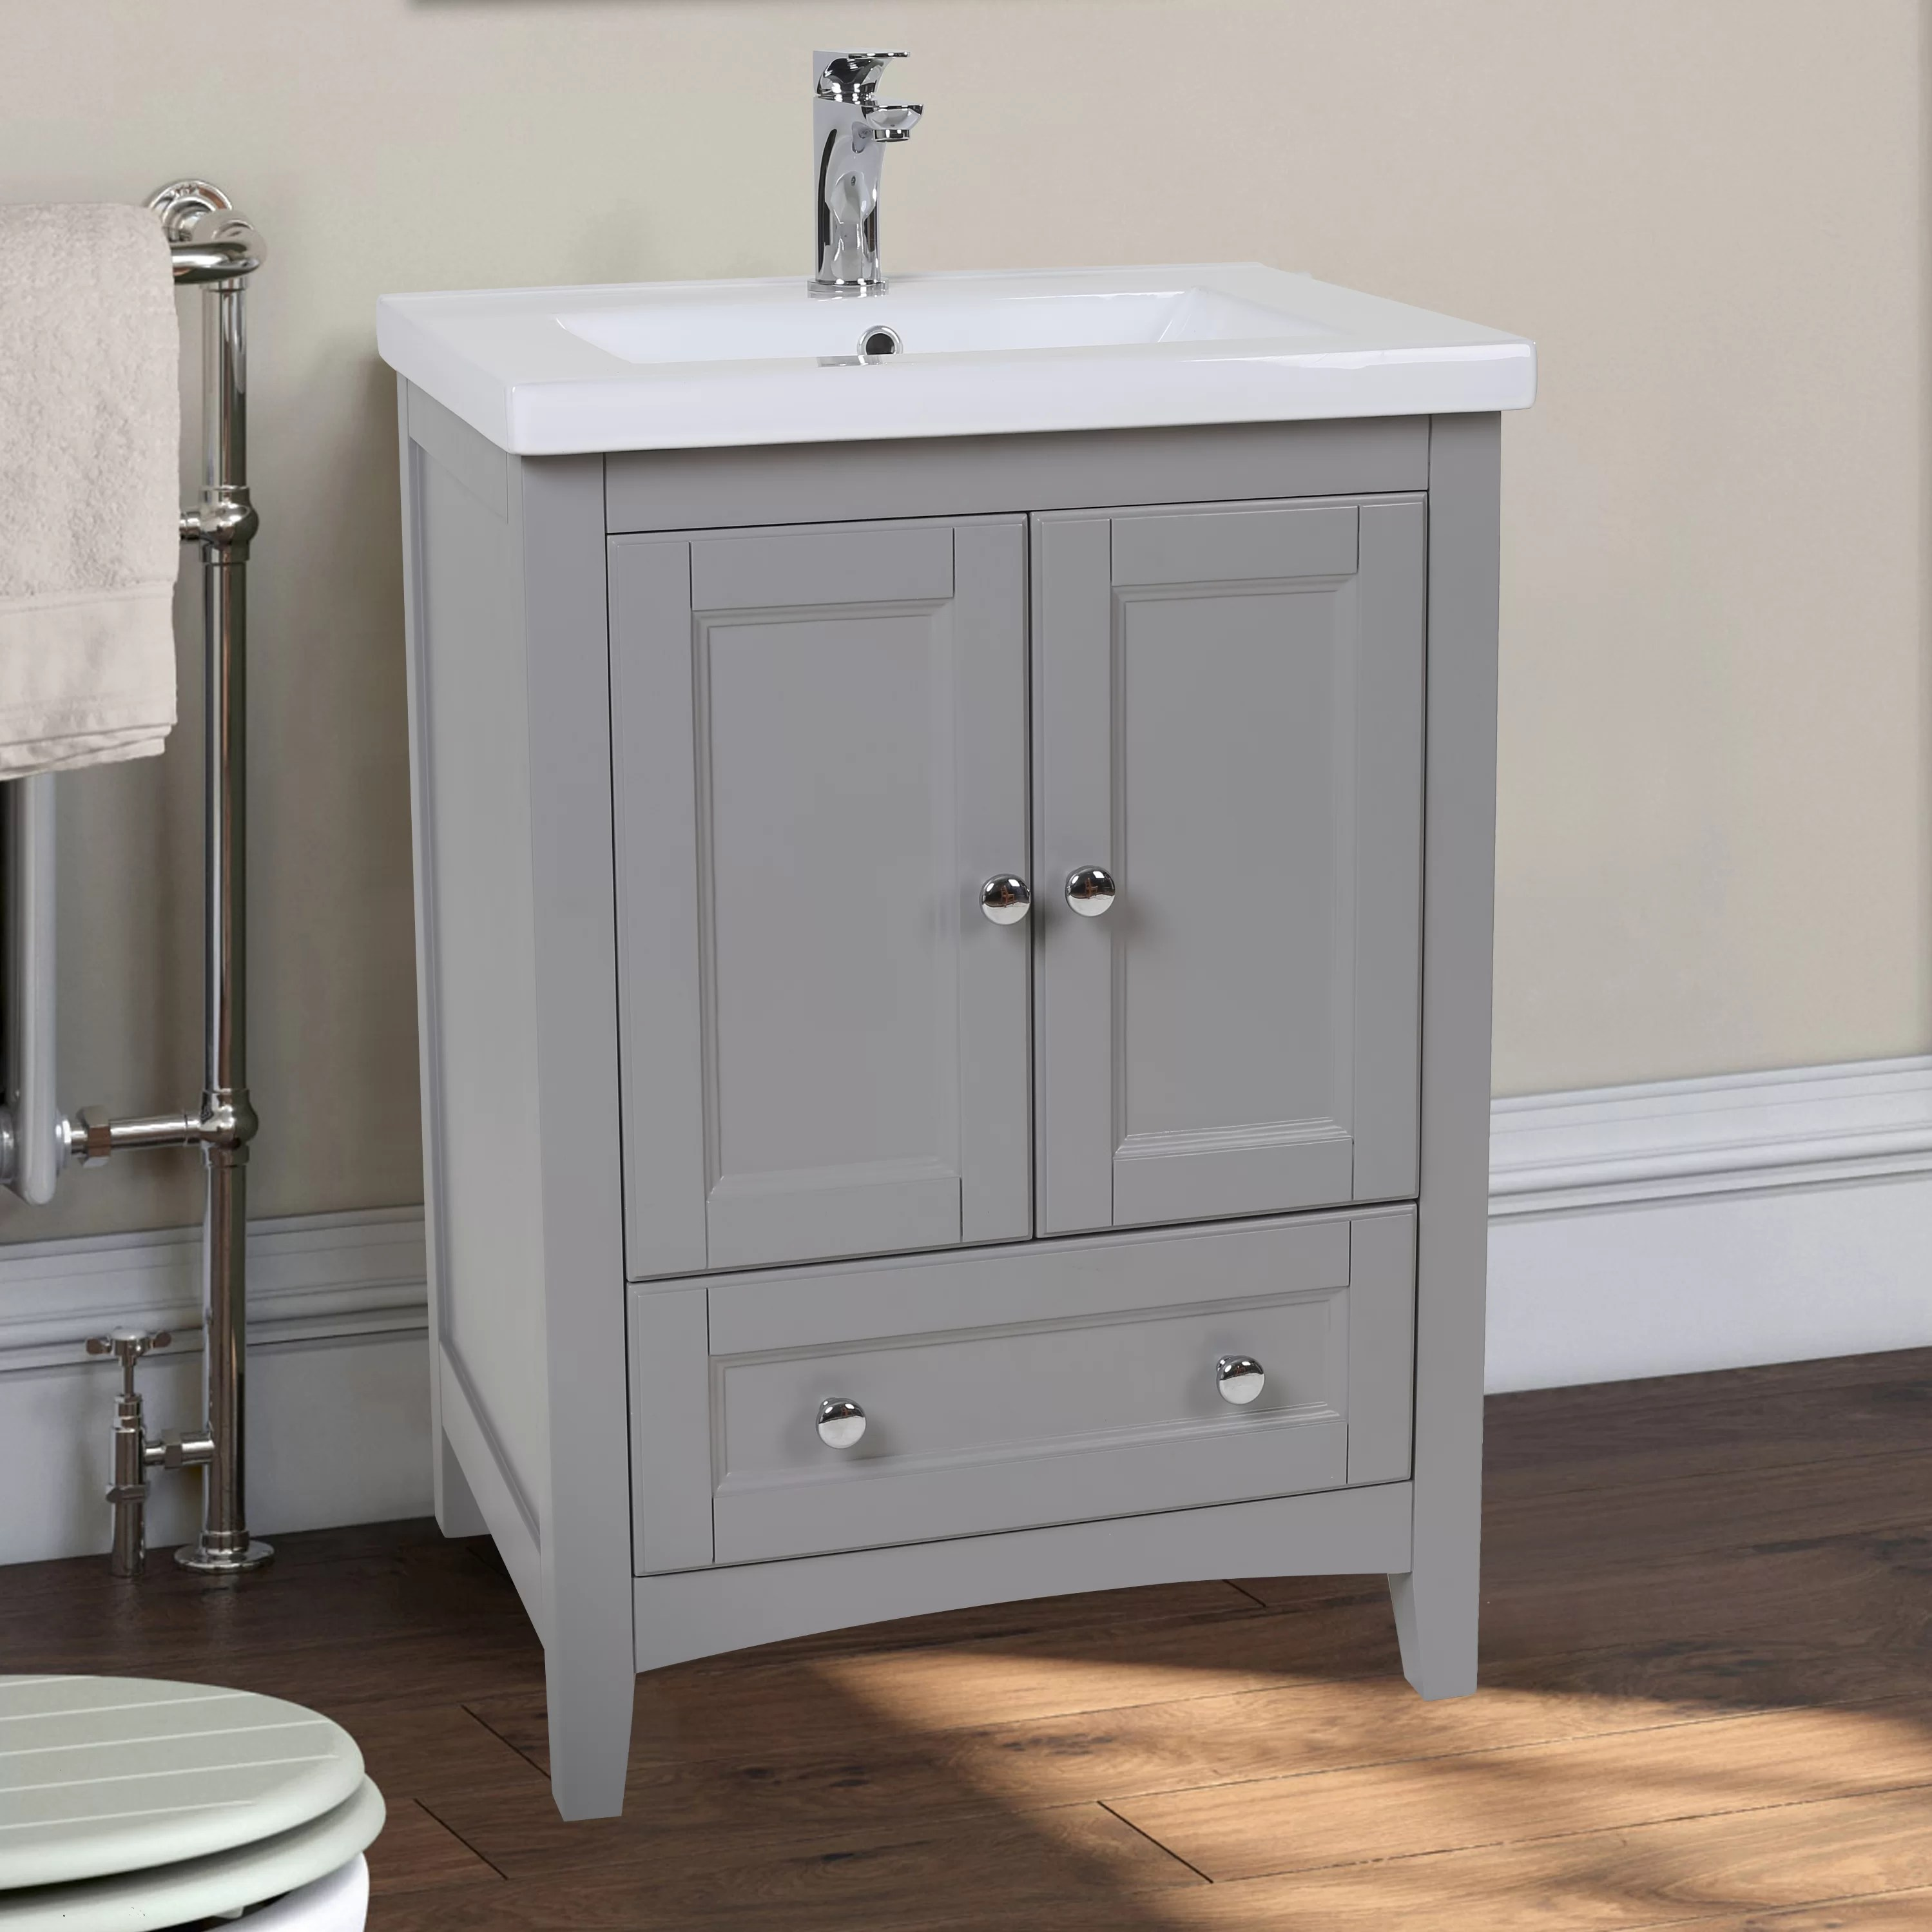 Bathroom Vanitiy Elegant Lighting Danville 24 Quot Single Bathroom Vanity Set